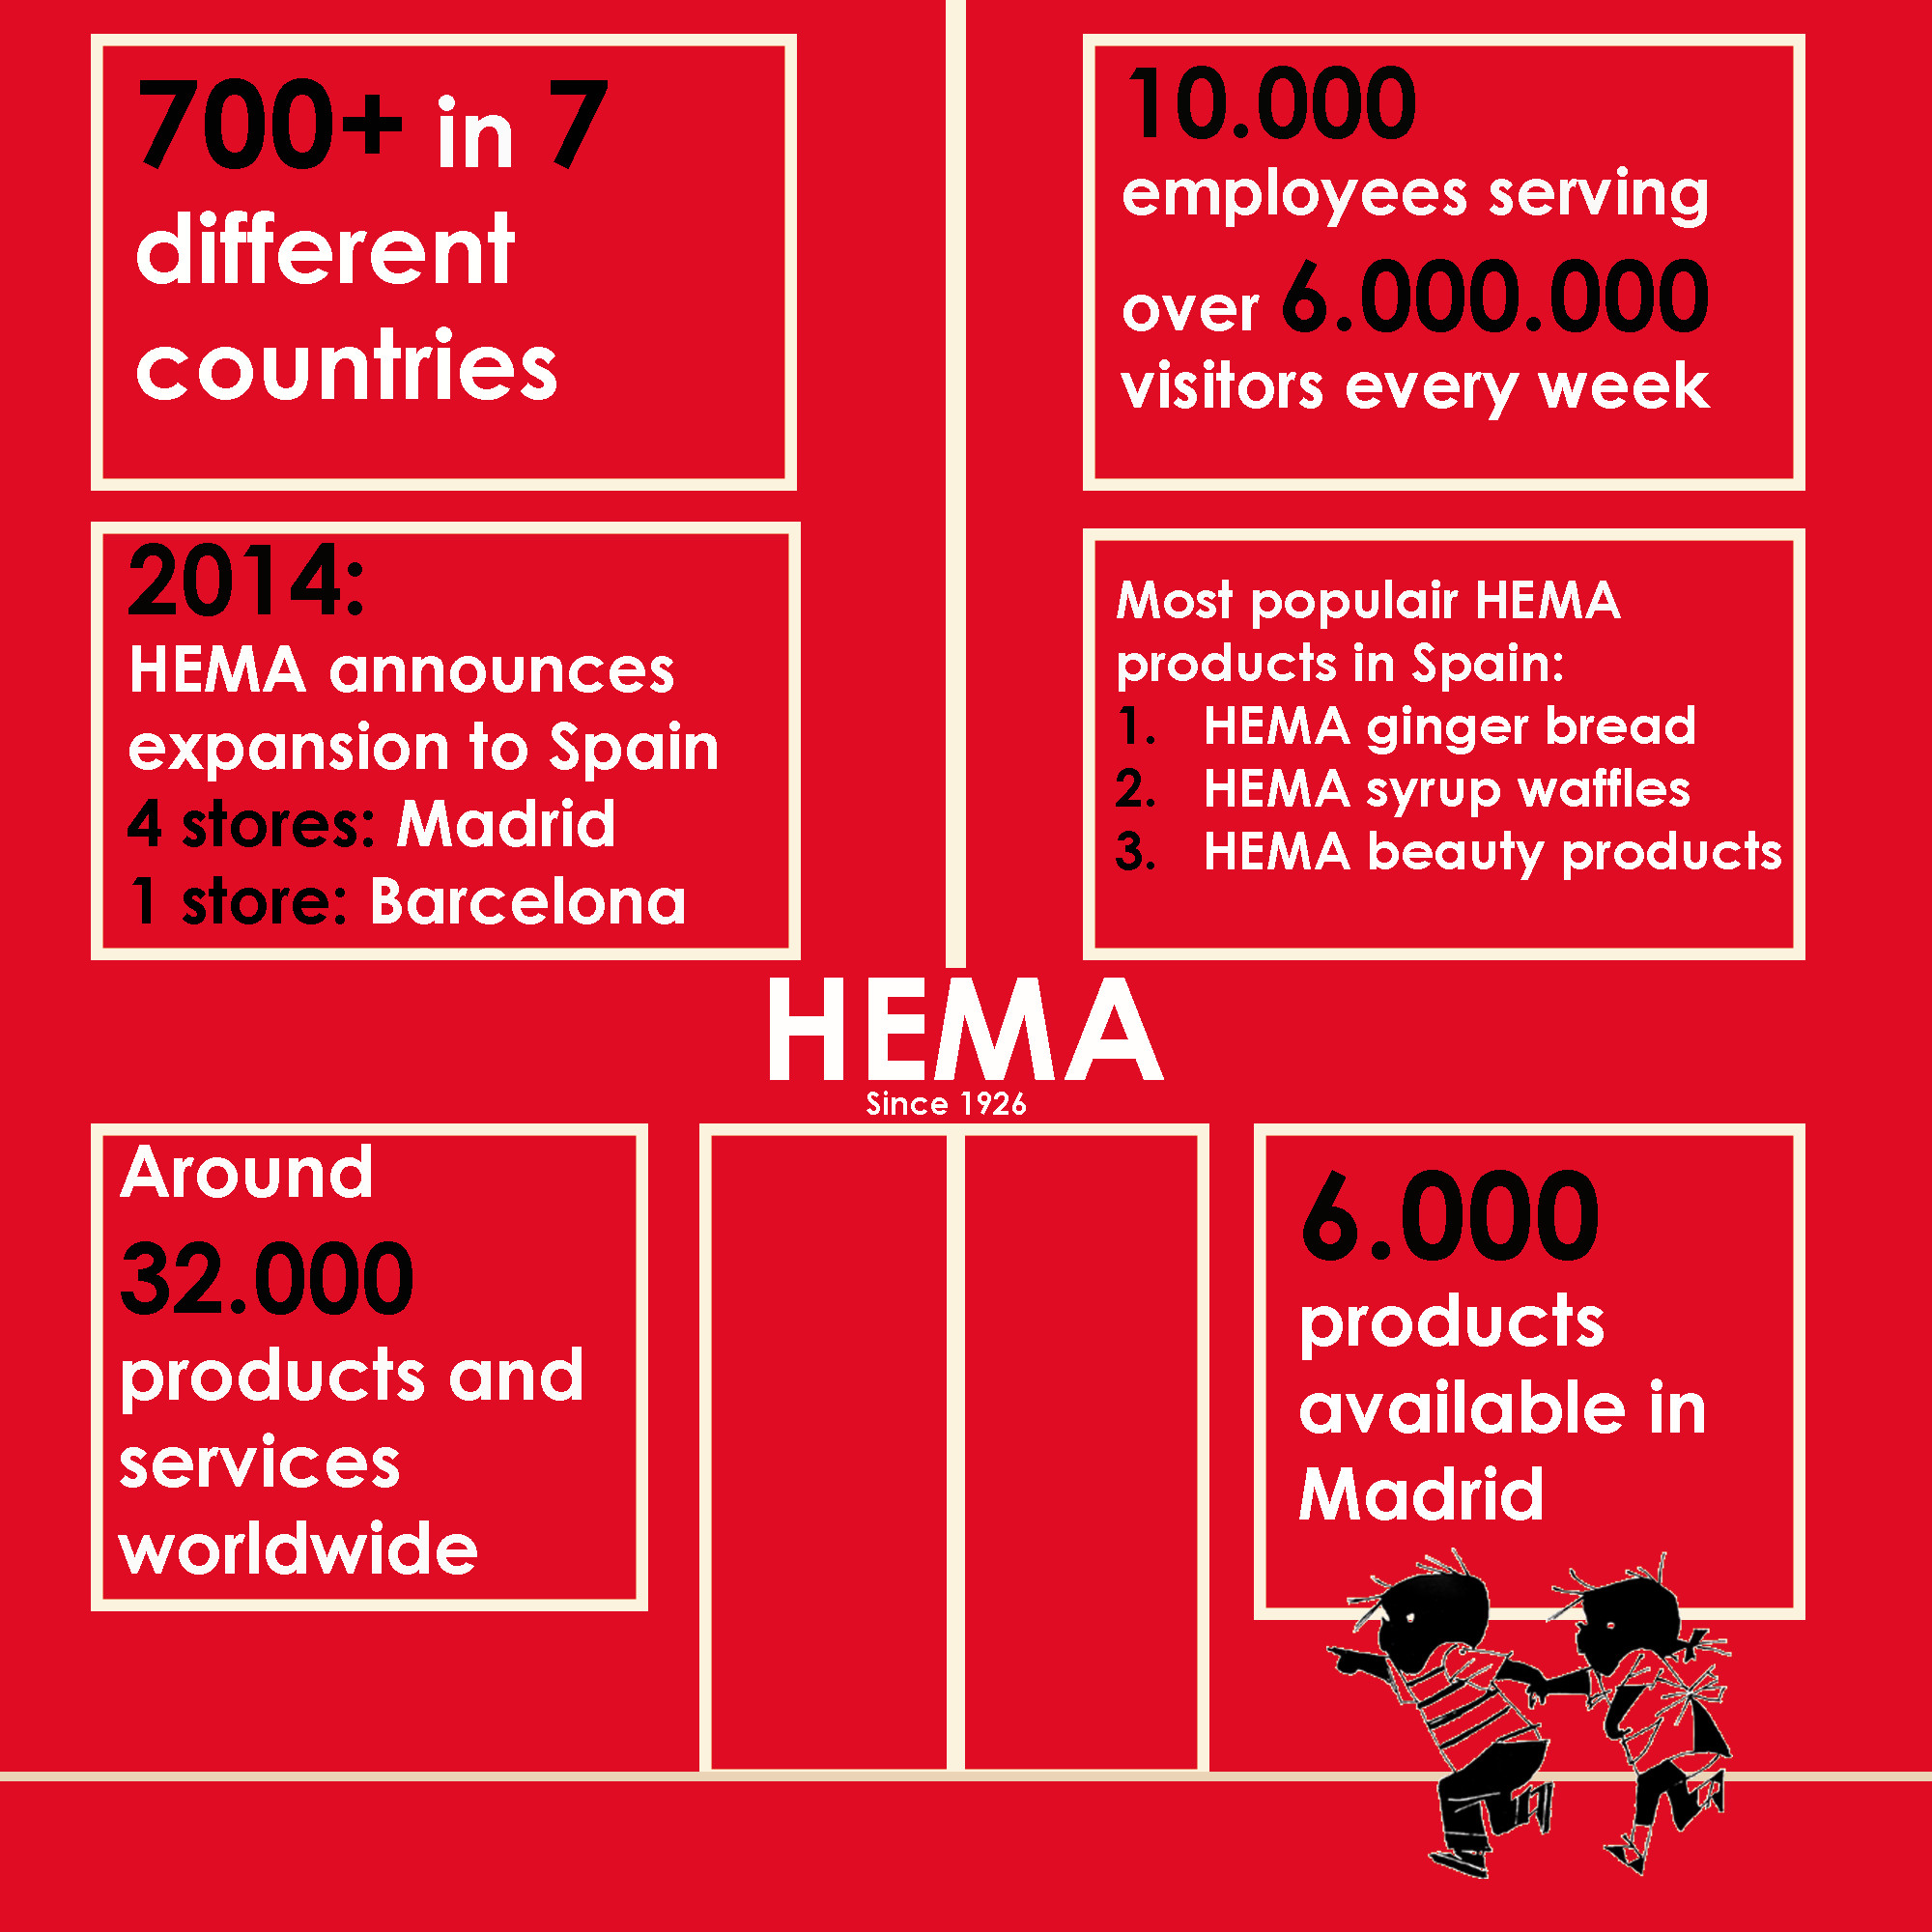 The success story of HEMA in Madrid – The International Angle